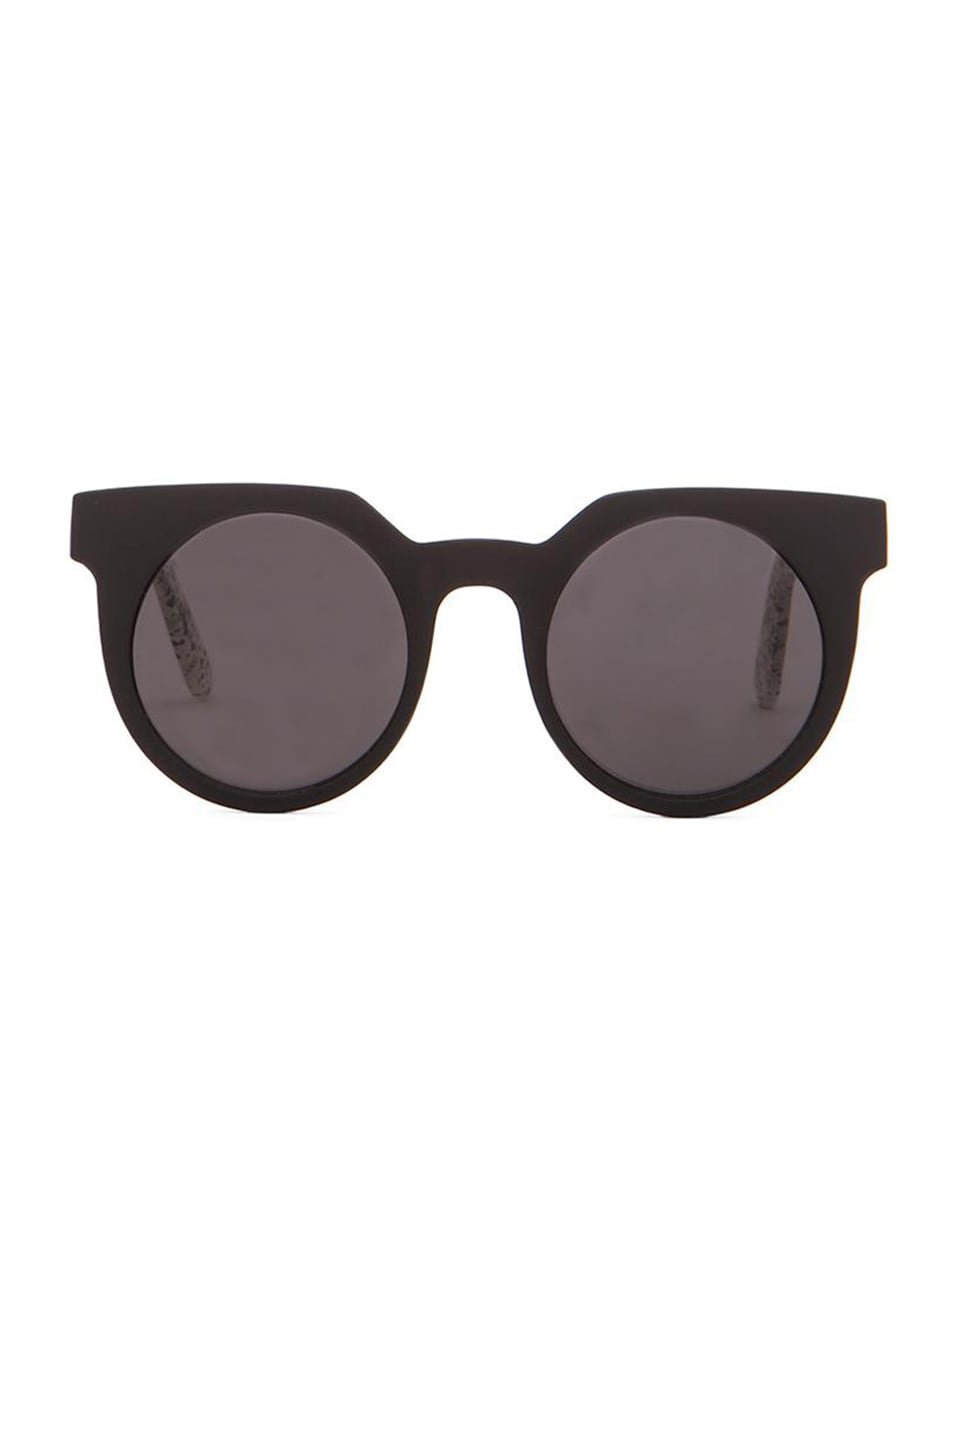 Quay Frankie Sunglasses in Black